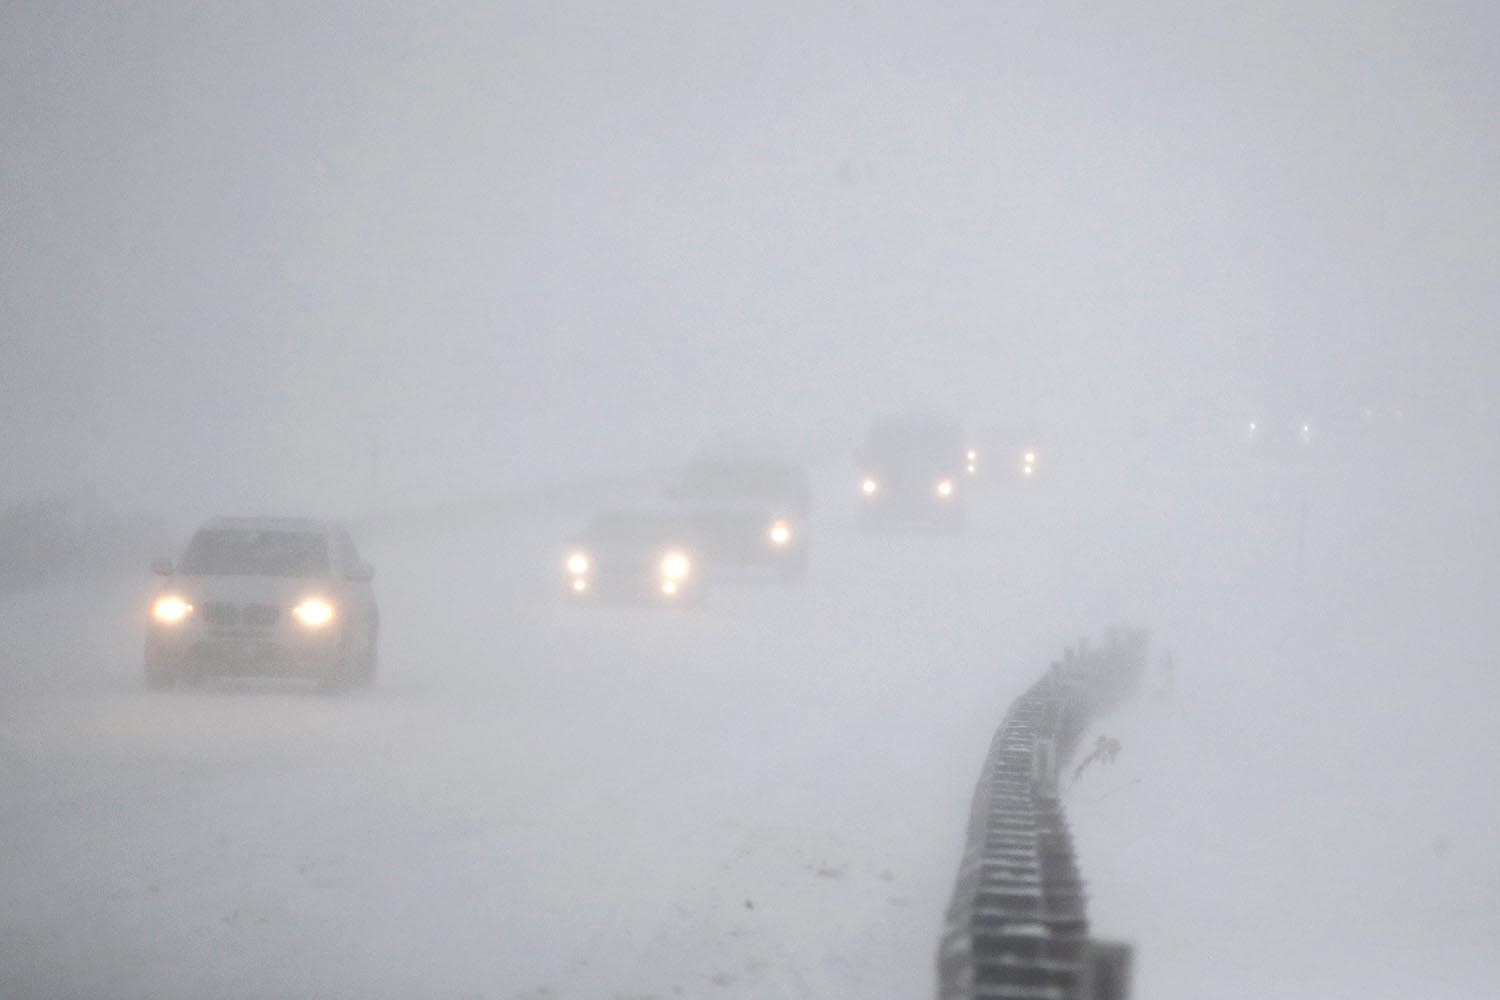 "<div class=""meta image-caption""><div class=""origin-logo origin-image ap""><span>AP</span></div><span class=""caption-text"">Vehicles commute southbound on the Garden State Parkway in whiteout conditions during a snowstorm, Thursday, Jan. 4, 2018, in Eatontown, N.J. (AP Photo/Julio Cortez)</span></div>"